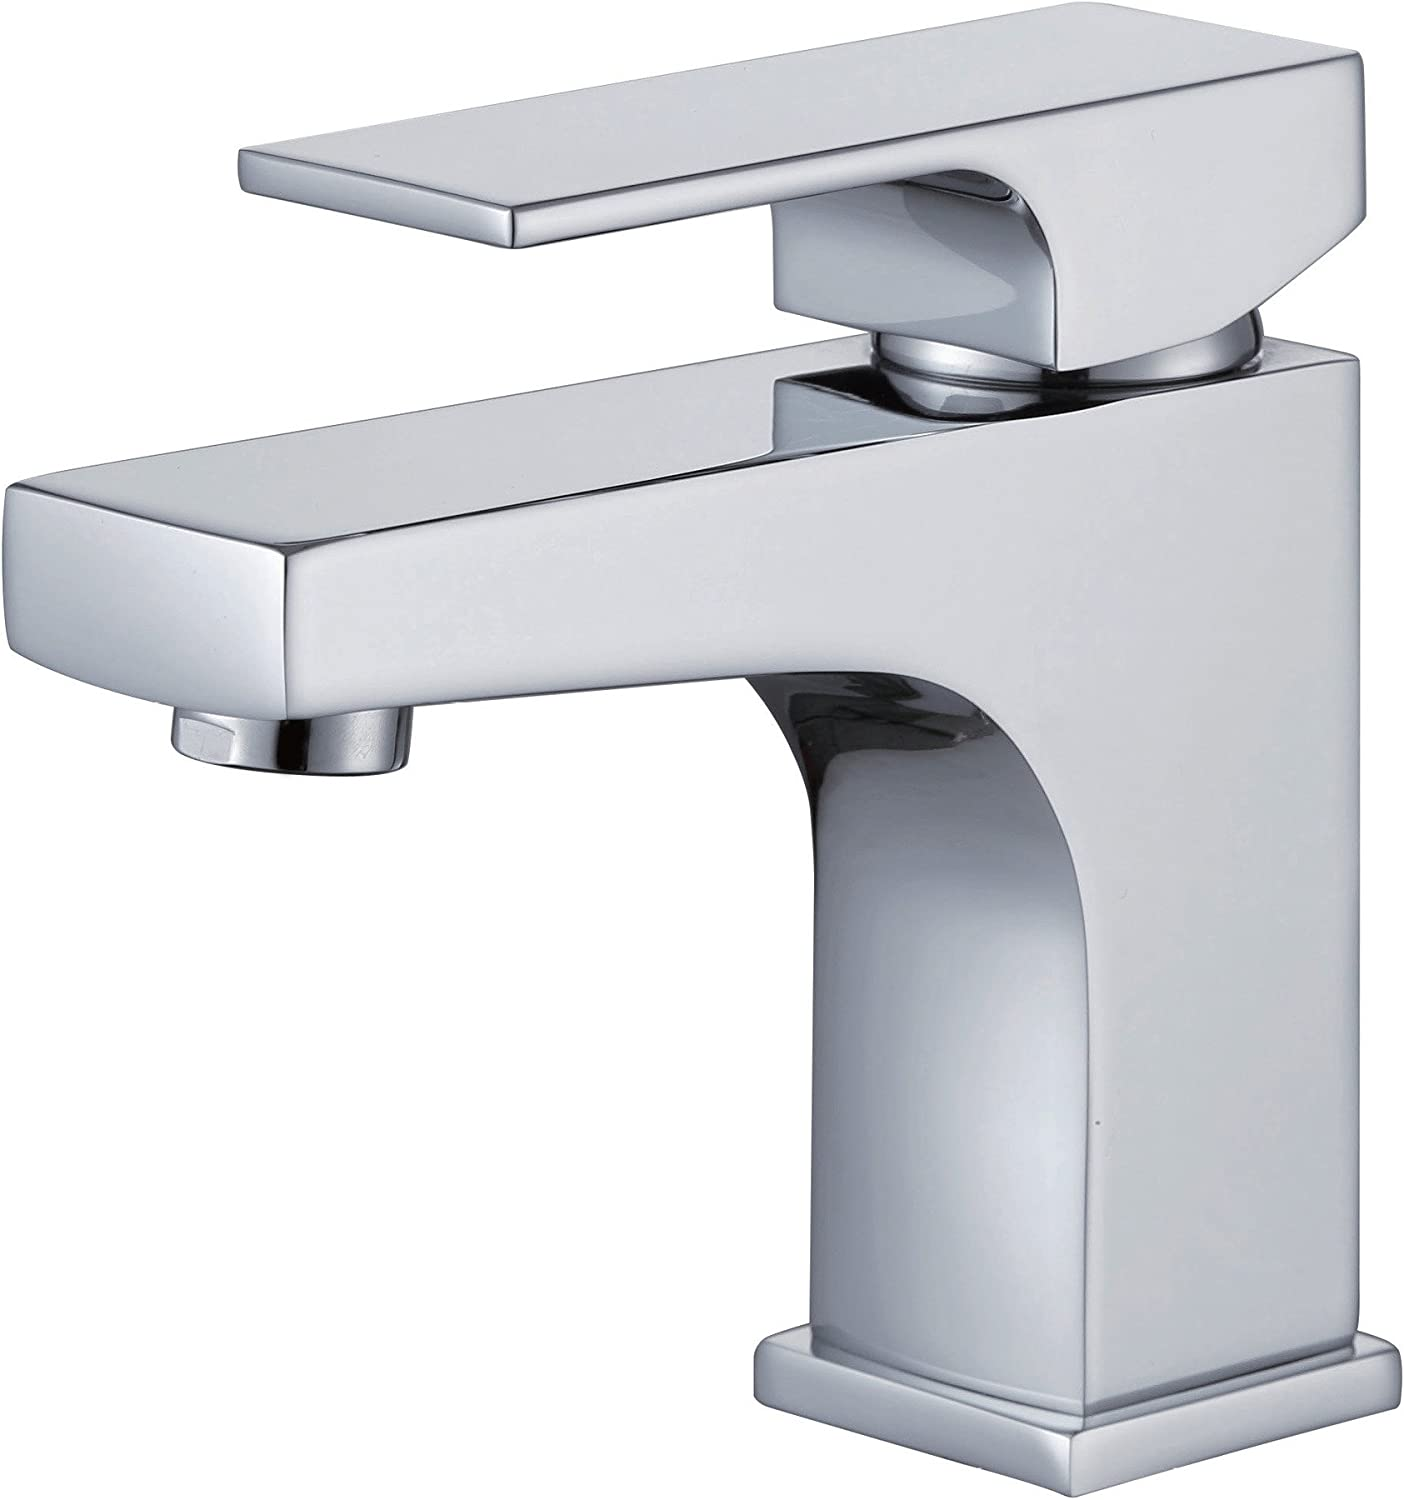 Basin Faucet Cold and hot water all copper faucet basin basin faucet hotel faucet high-end faucet